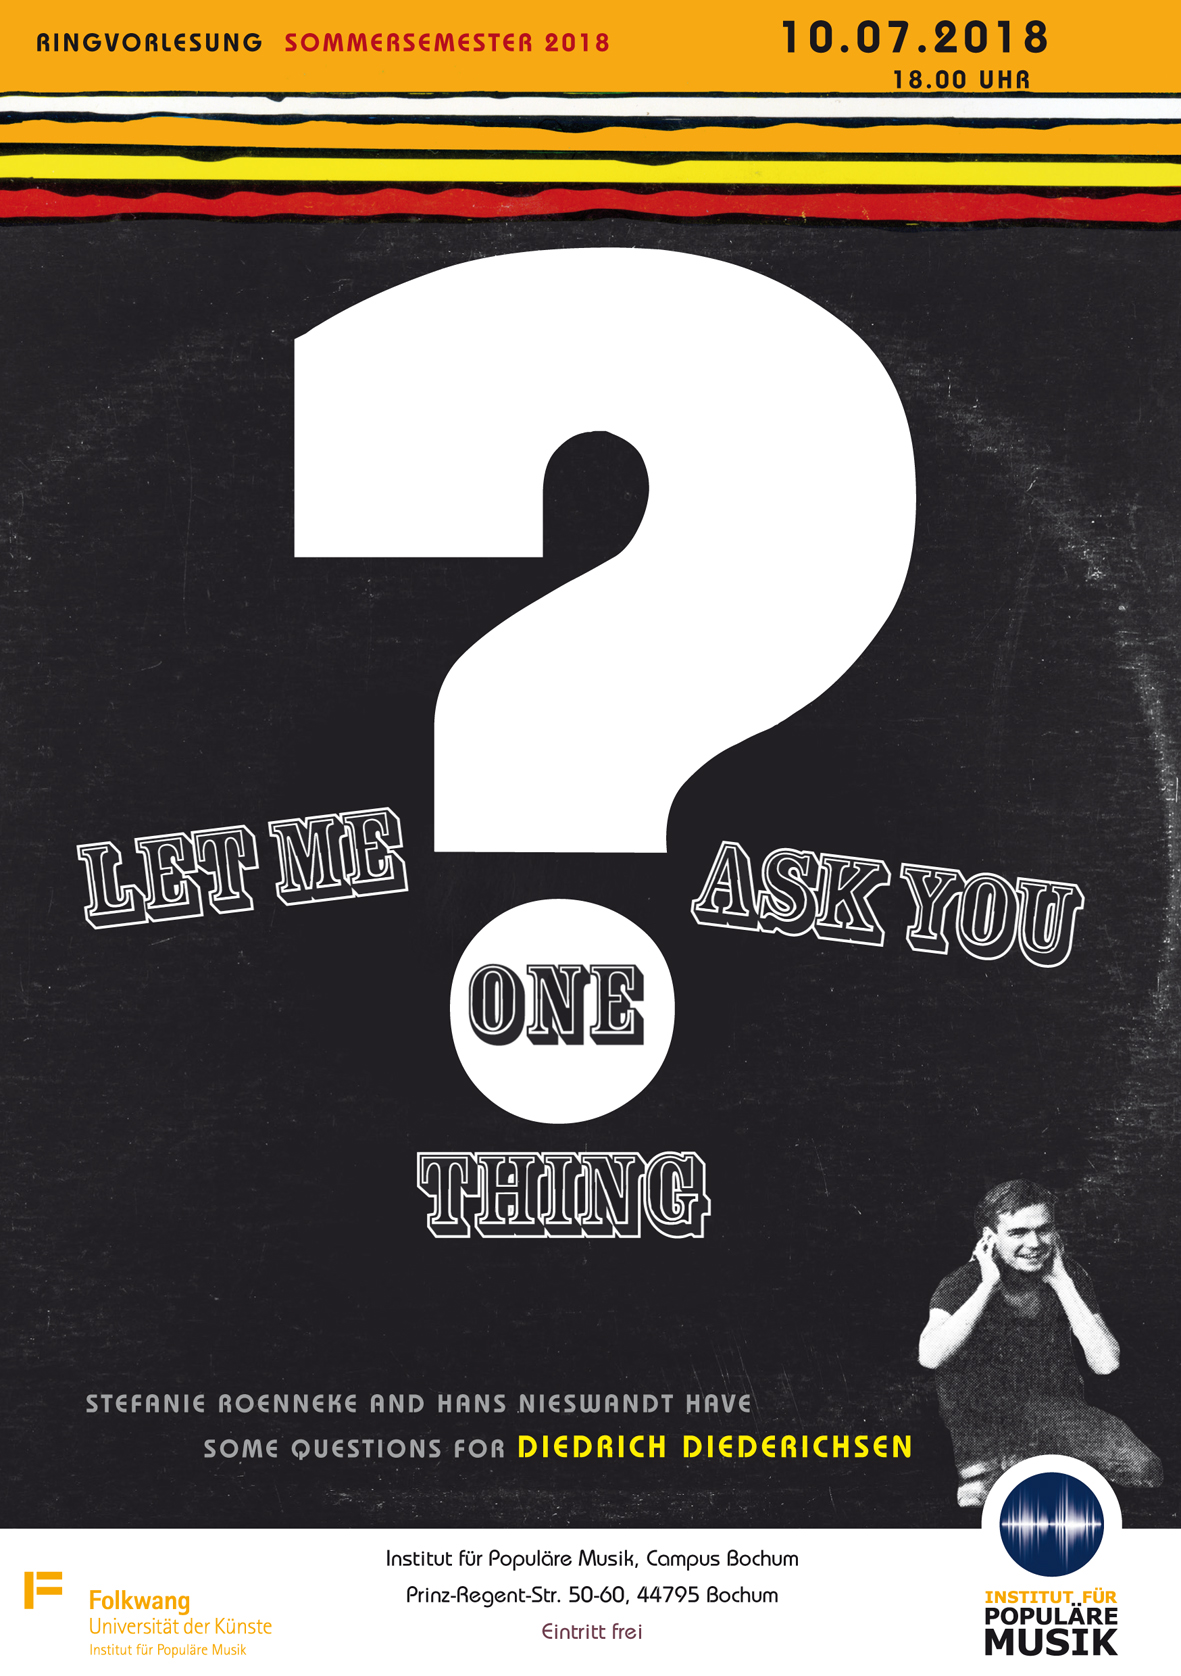 Prof. Diedrich Diederichsen - Let me ask you one thing